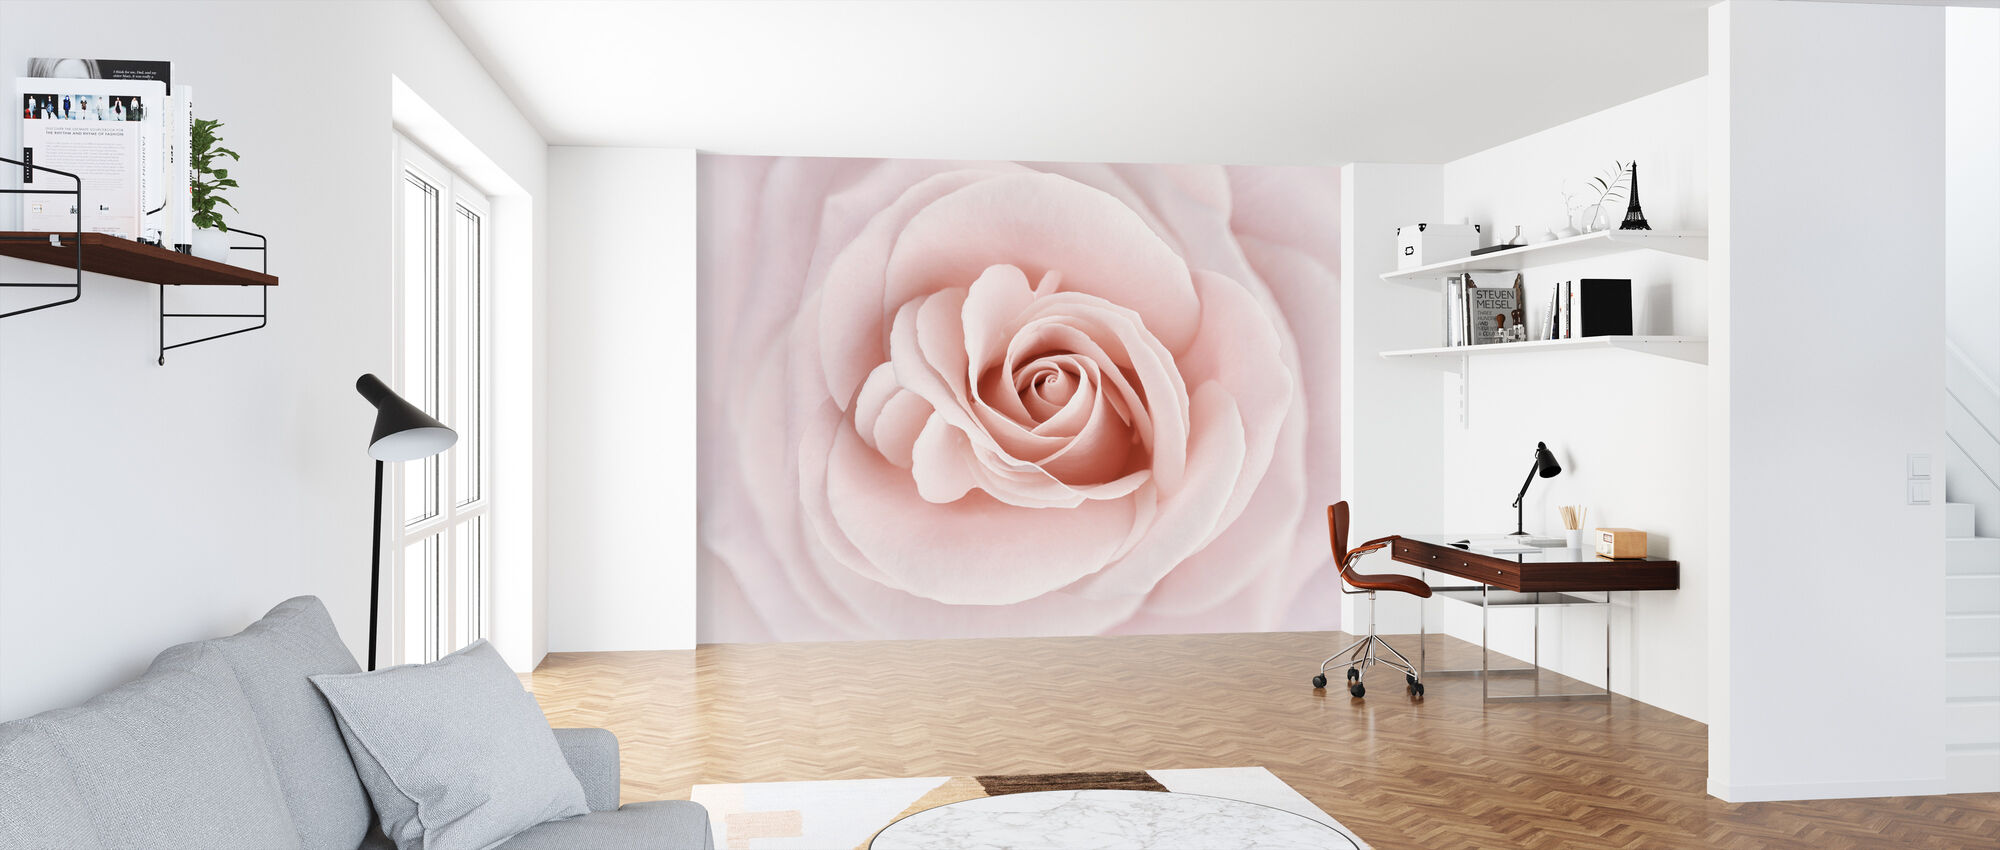 Soft Rose in Peach Pink Shades - Wallpaper - Office